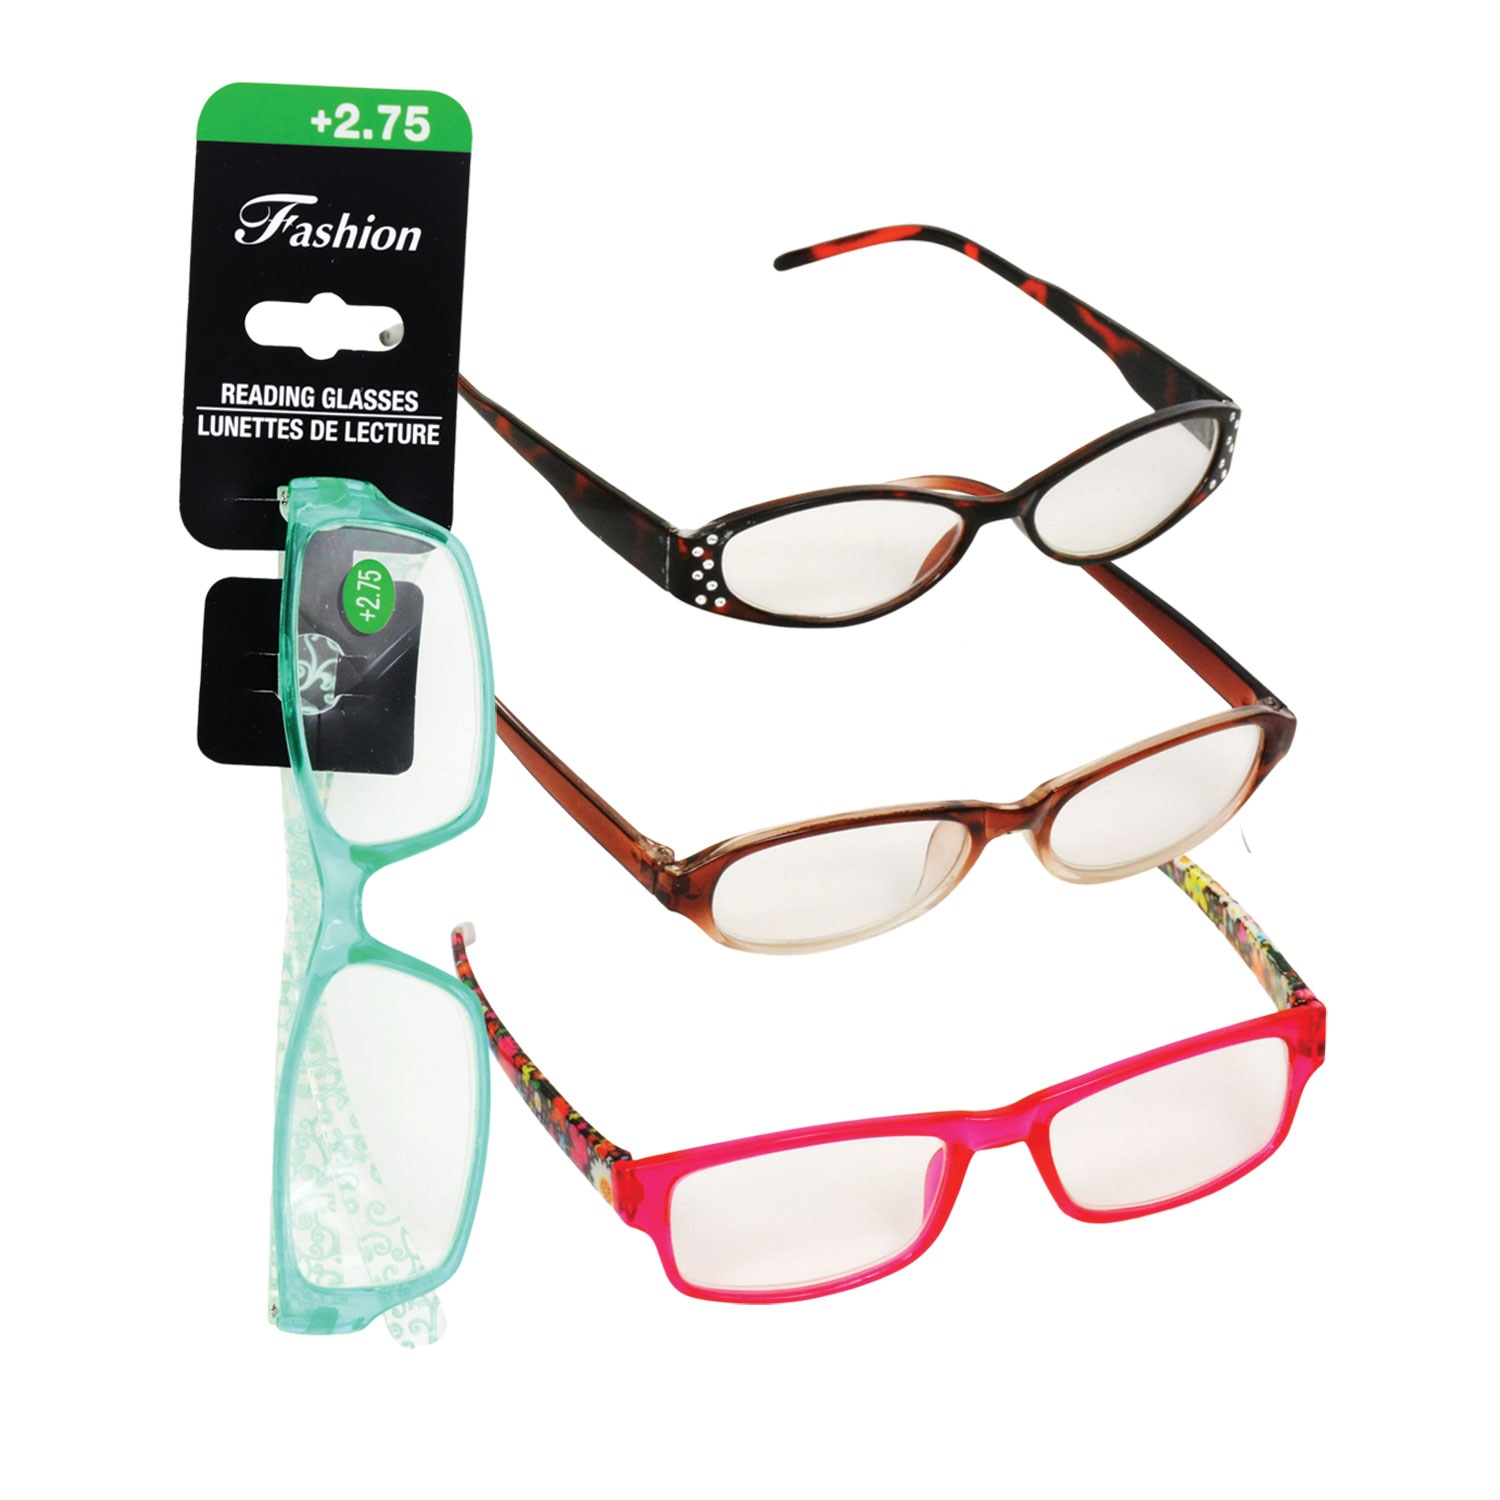 e298175fb488 Stylish Reading Glasses with +2.75 Diopter